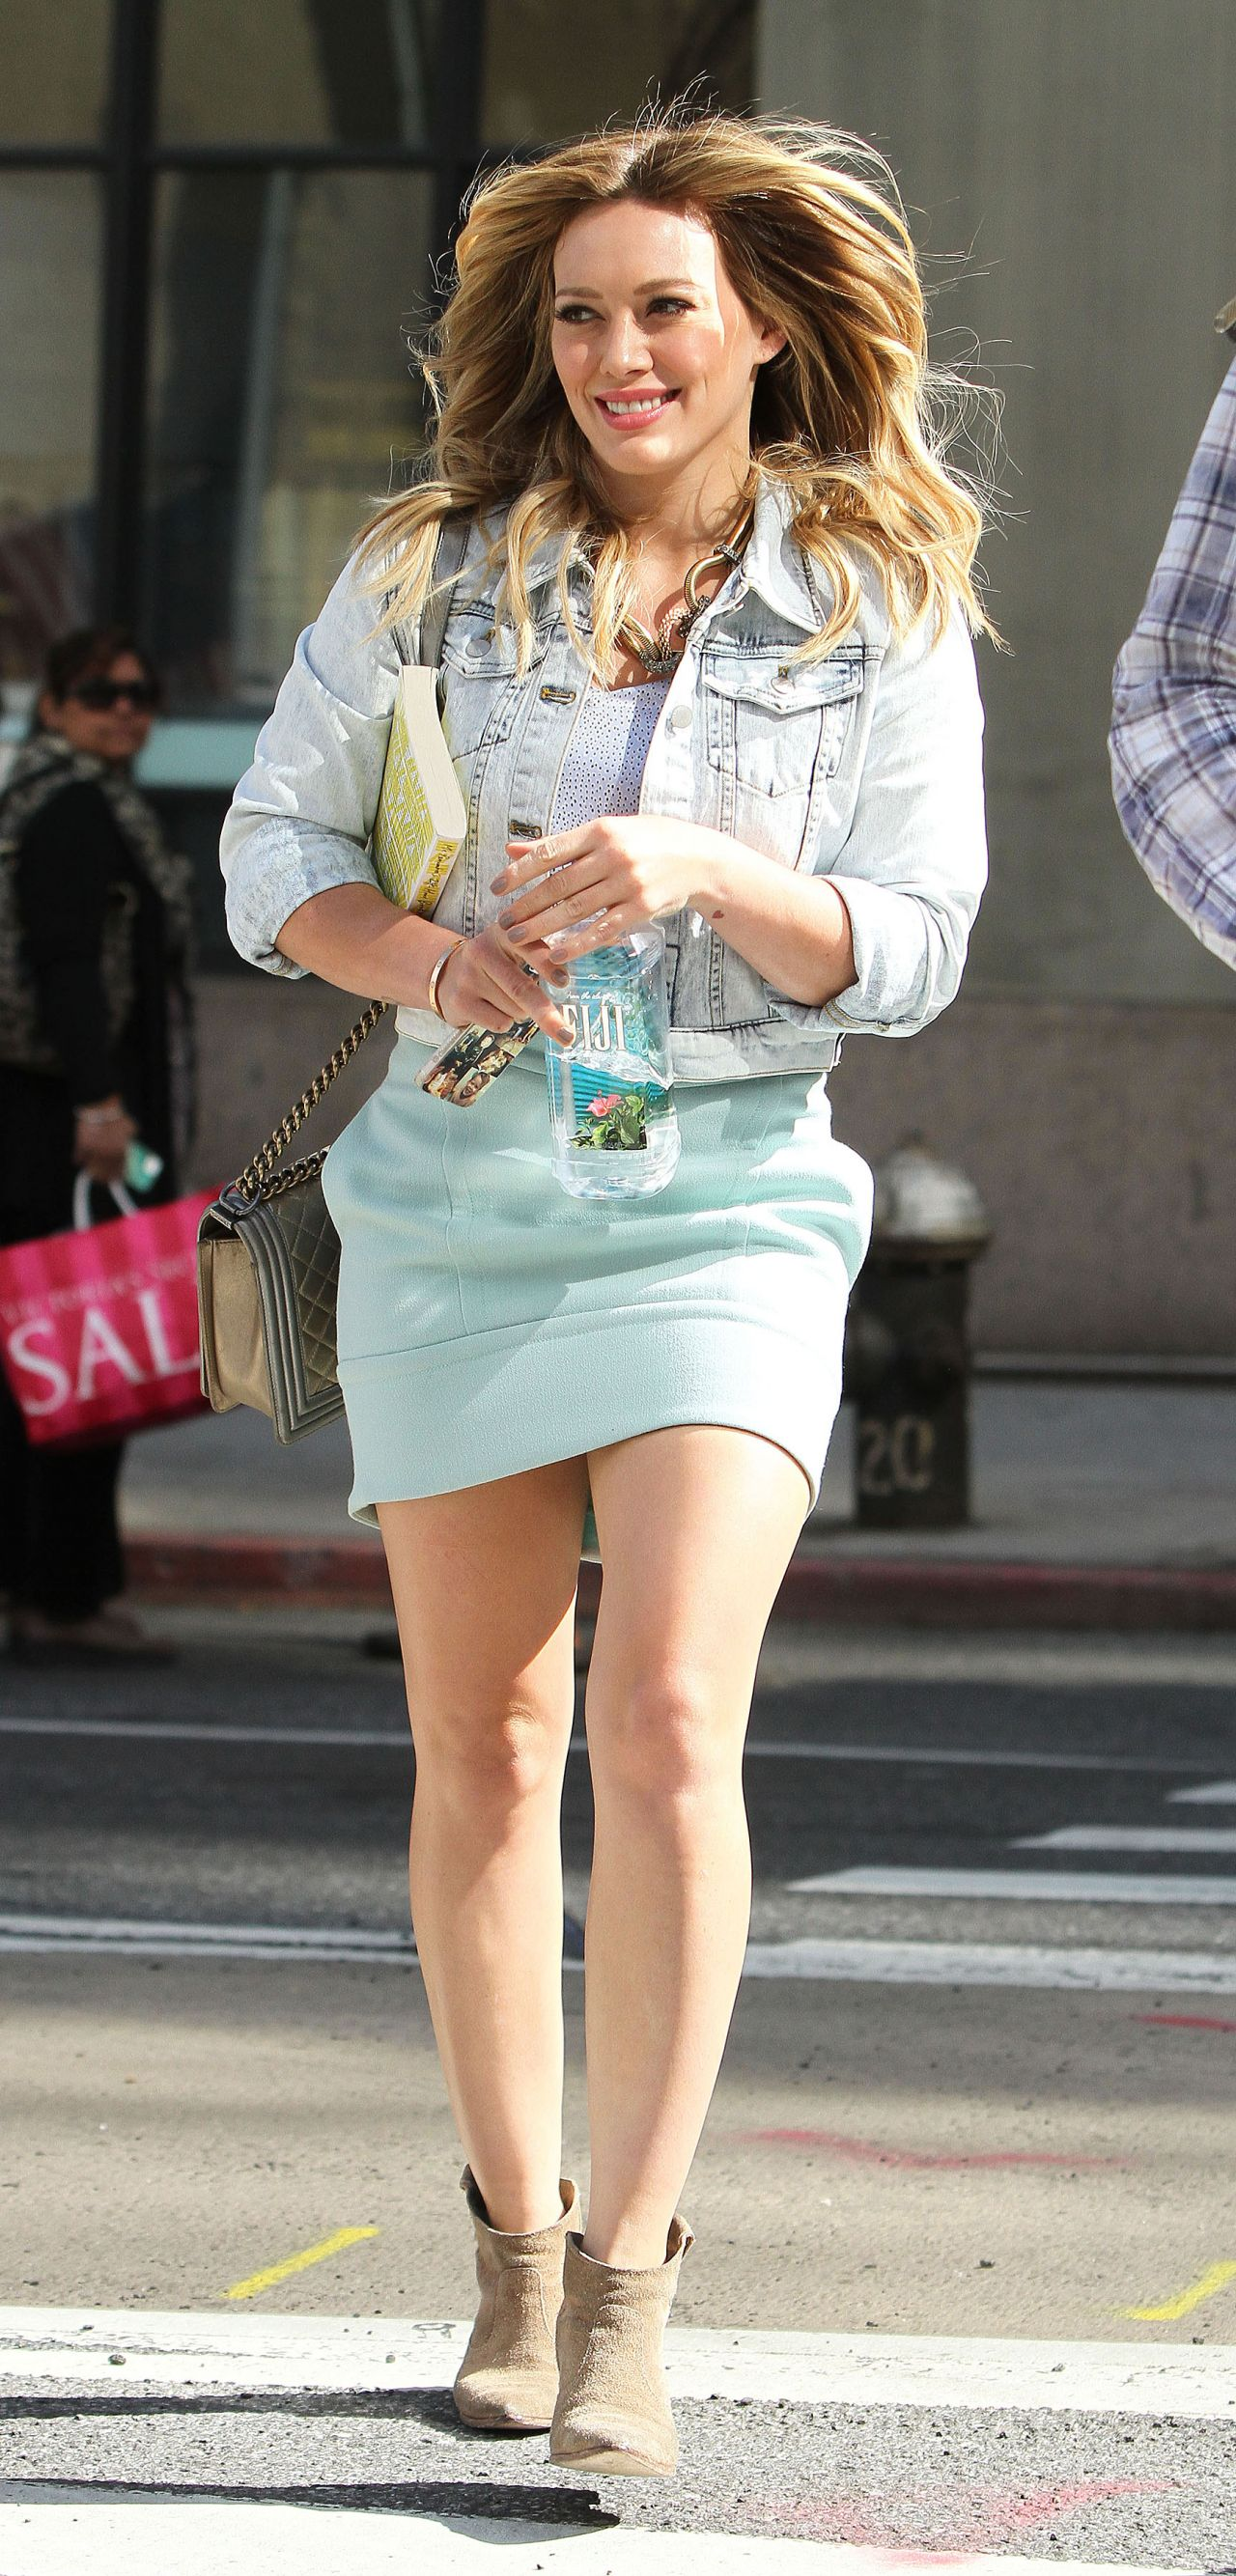 Skirt mini hilary duff